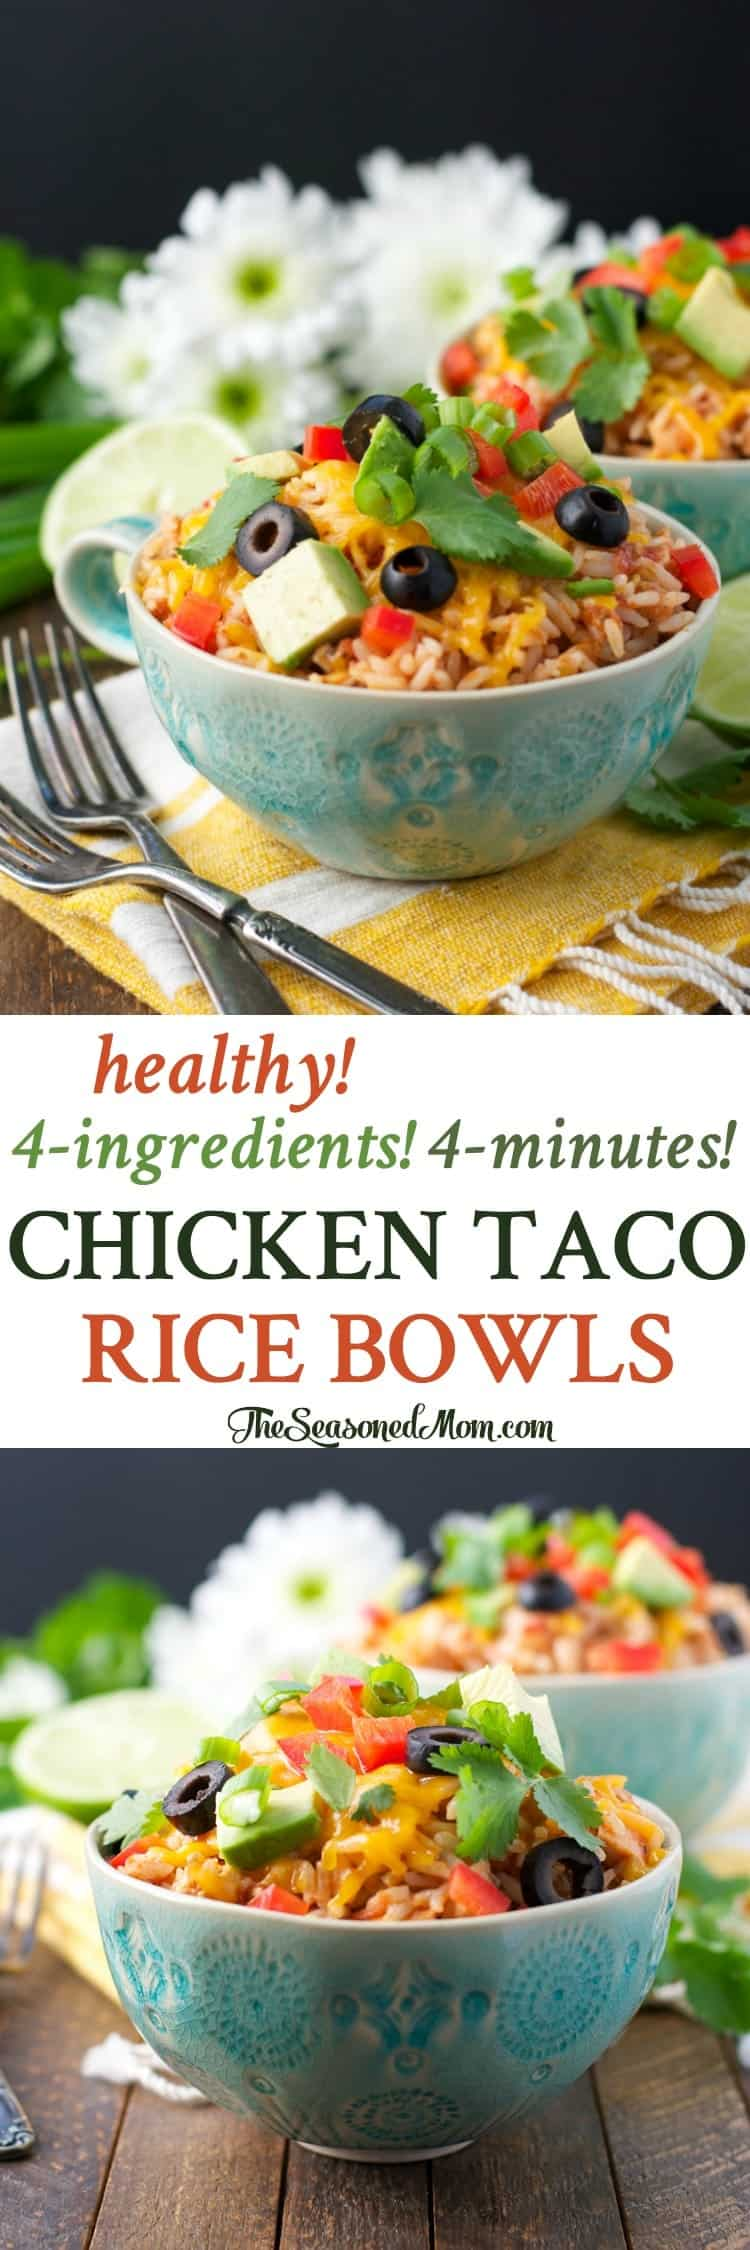 These quick and healthy recipes combine fresh ingredients with pantry staples for speedy meals you'll feel great about eating. These quick and healthy recipes combine fresh ingredients with pantry staples for speedy meals you'll feel great about eating.